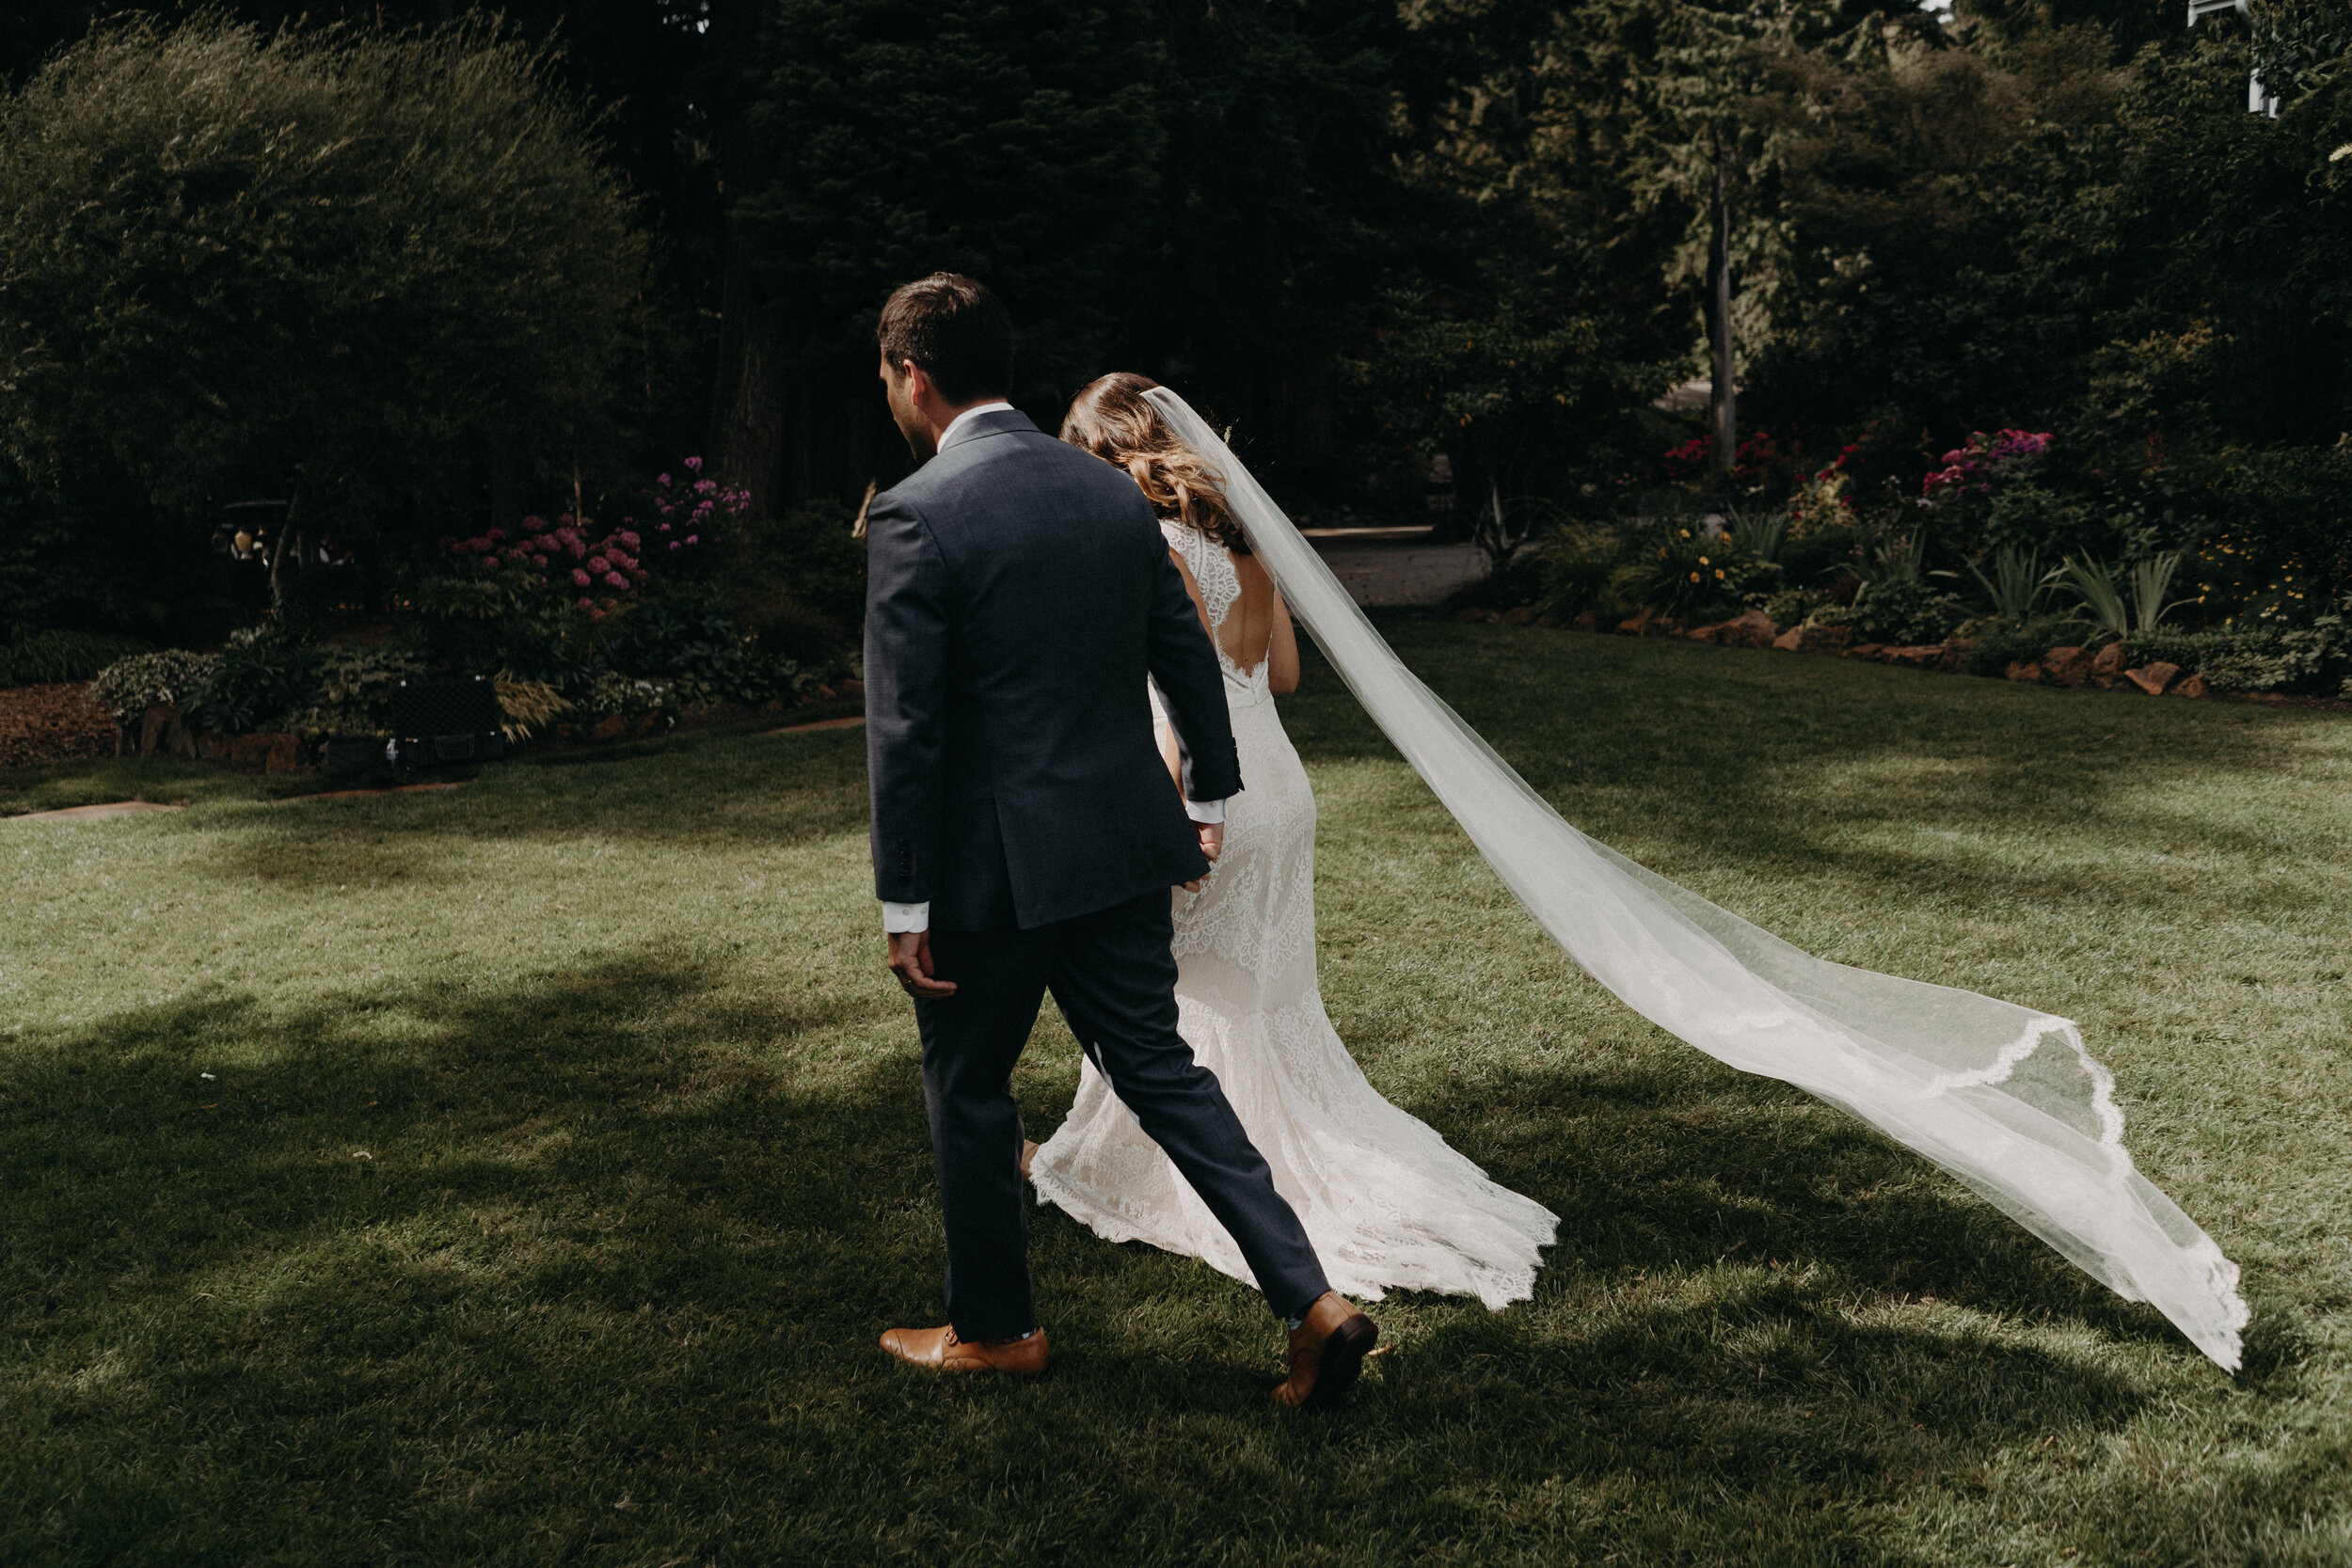 Emotional & Intimate wedding at Fireseed Catering, Whidbey Island - Hues of cool blue & warm green to celebrate Kristen + Brett on their wedding day!Venue: Fireseed Catering on Whidbey IslandDress: BHLDN